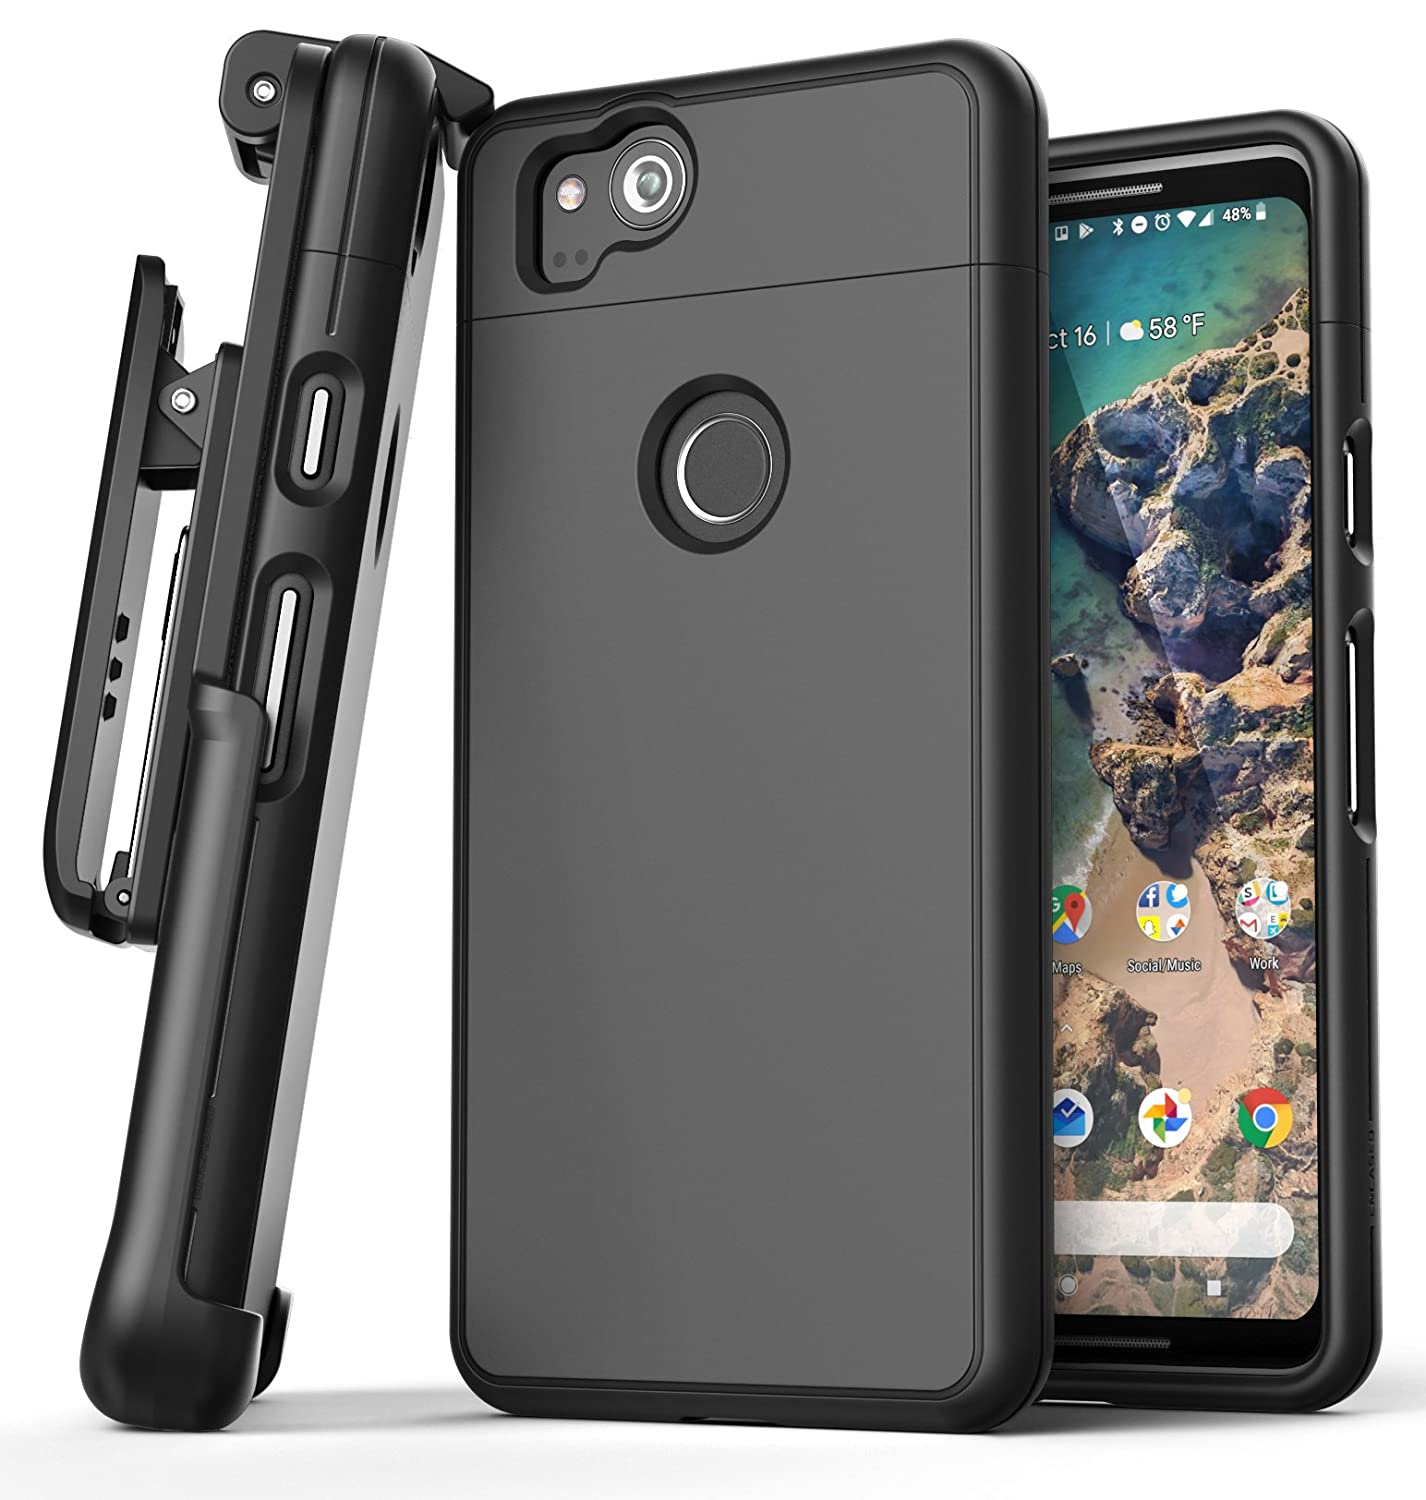 lowest price 97852 76832 Google Pixel 2 XL Belt Case [SlimShield Edition] Protective Grip Case with  Holster Clip for Pixel 2 XL (Black) by Encased